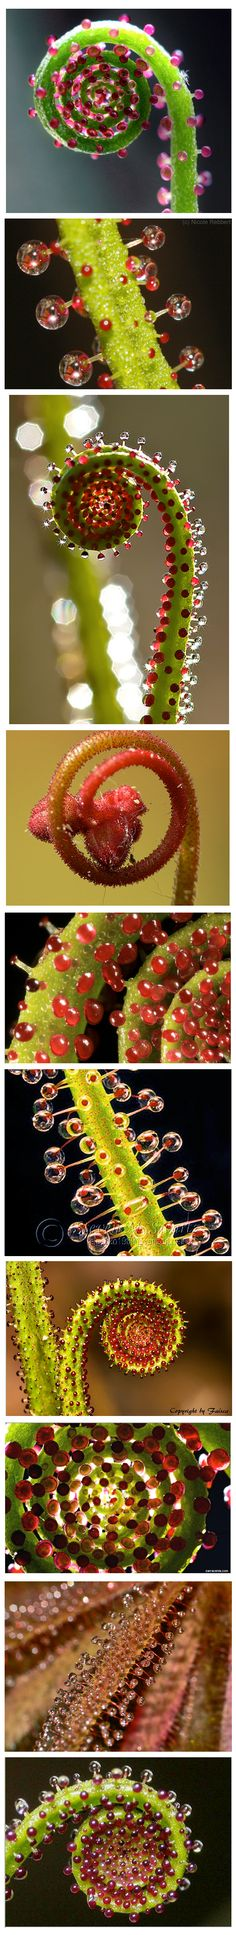 Sundews (Drosophylla) Carnivorous Plants - repinned by www.earthangel-family.de